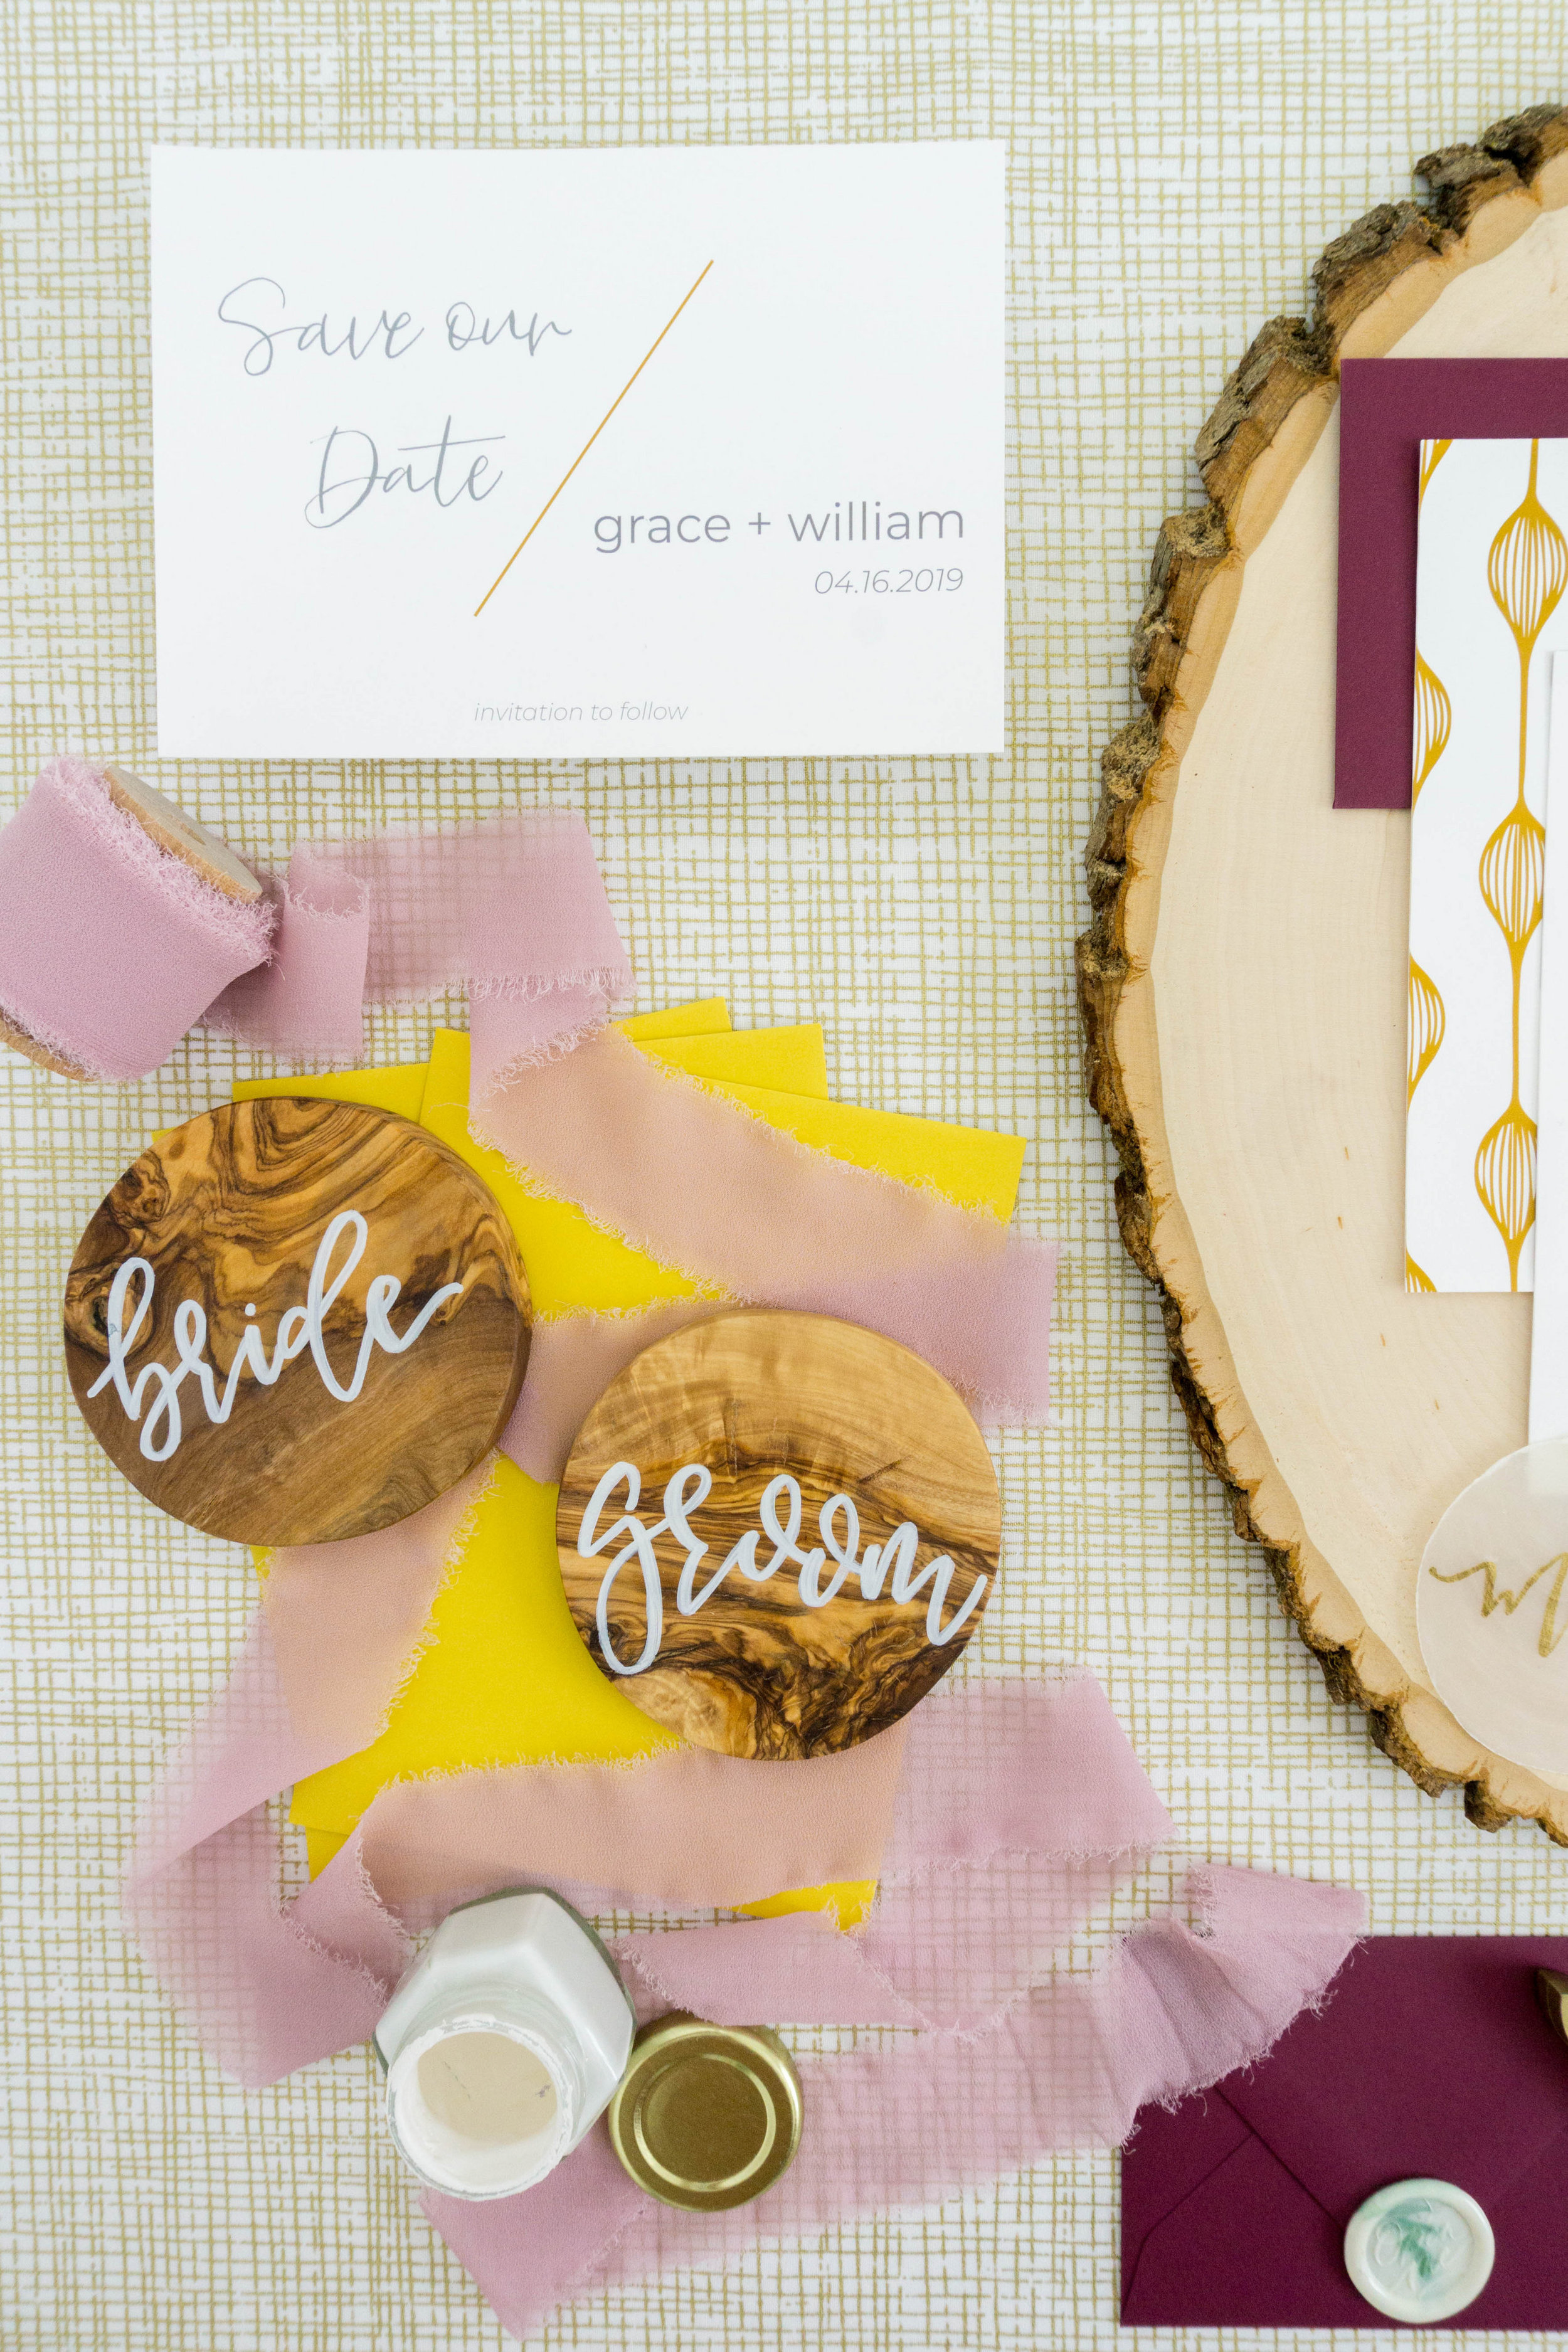 love-fern-design-studio-custom-wedding-invitations-for-the-modern-couple-modern-calligraphy-in-seattle-washington-custom-wedding-stationery-maroon-gold-yellow-wood-place-cards